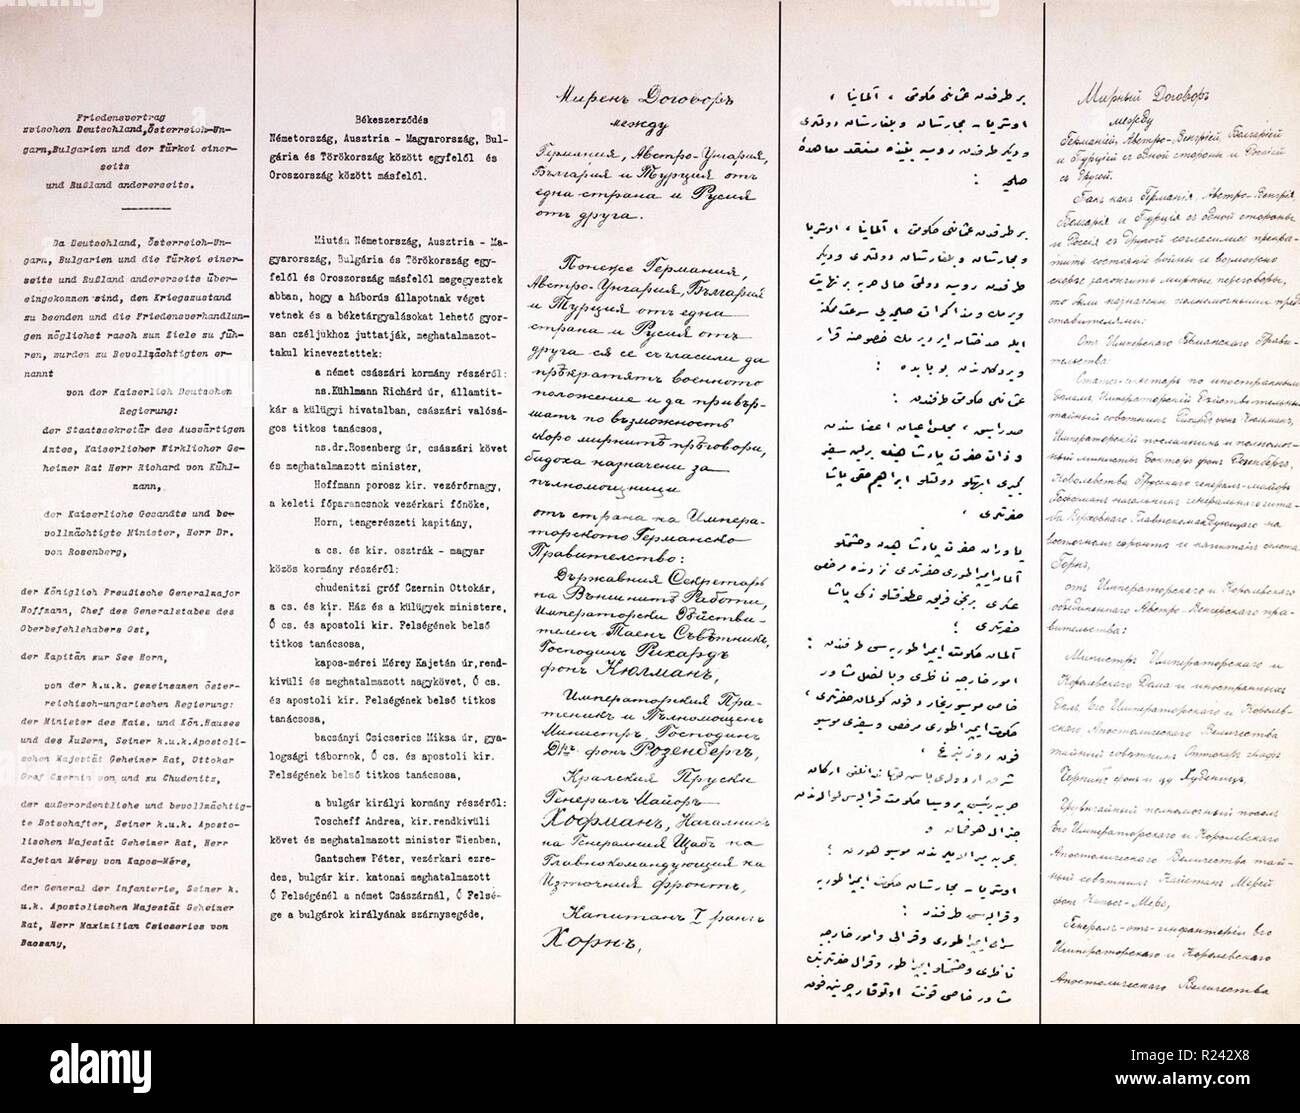 Brest-Litovsk Peace Treaty between Soviet Russia and Germany, Austria-Hungary, Bulgaria and Turkey, March 1918 - Stock Image